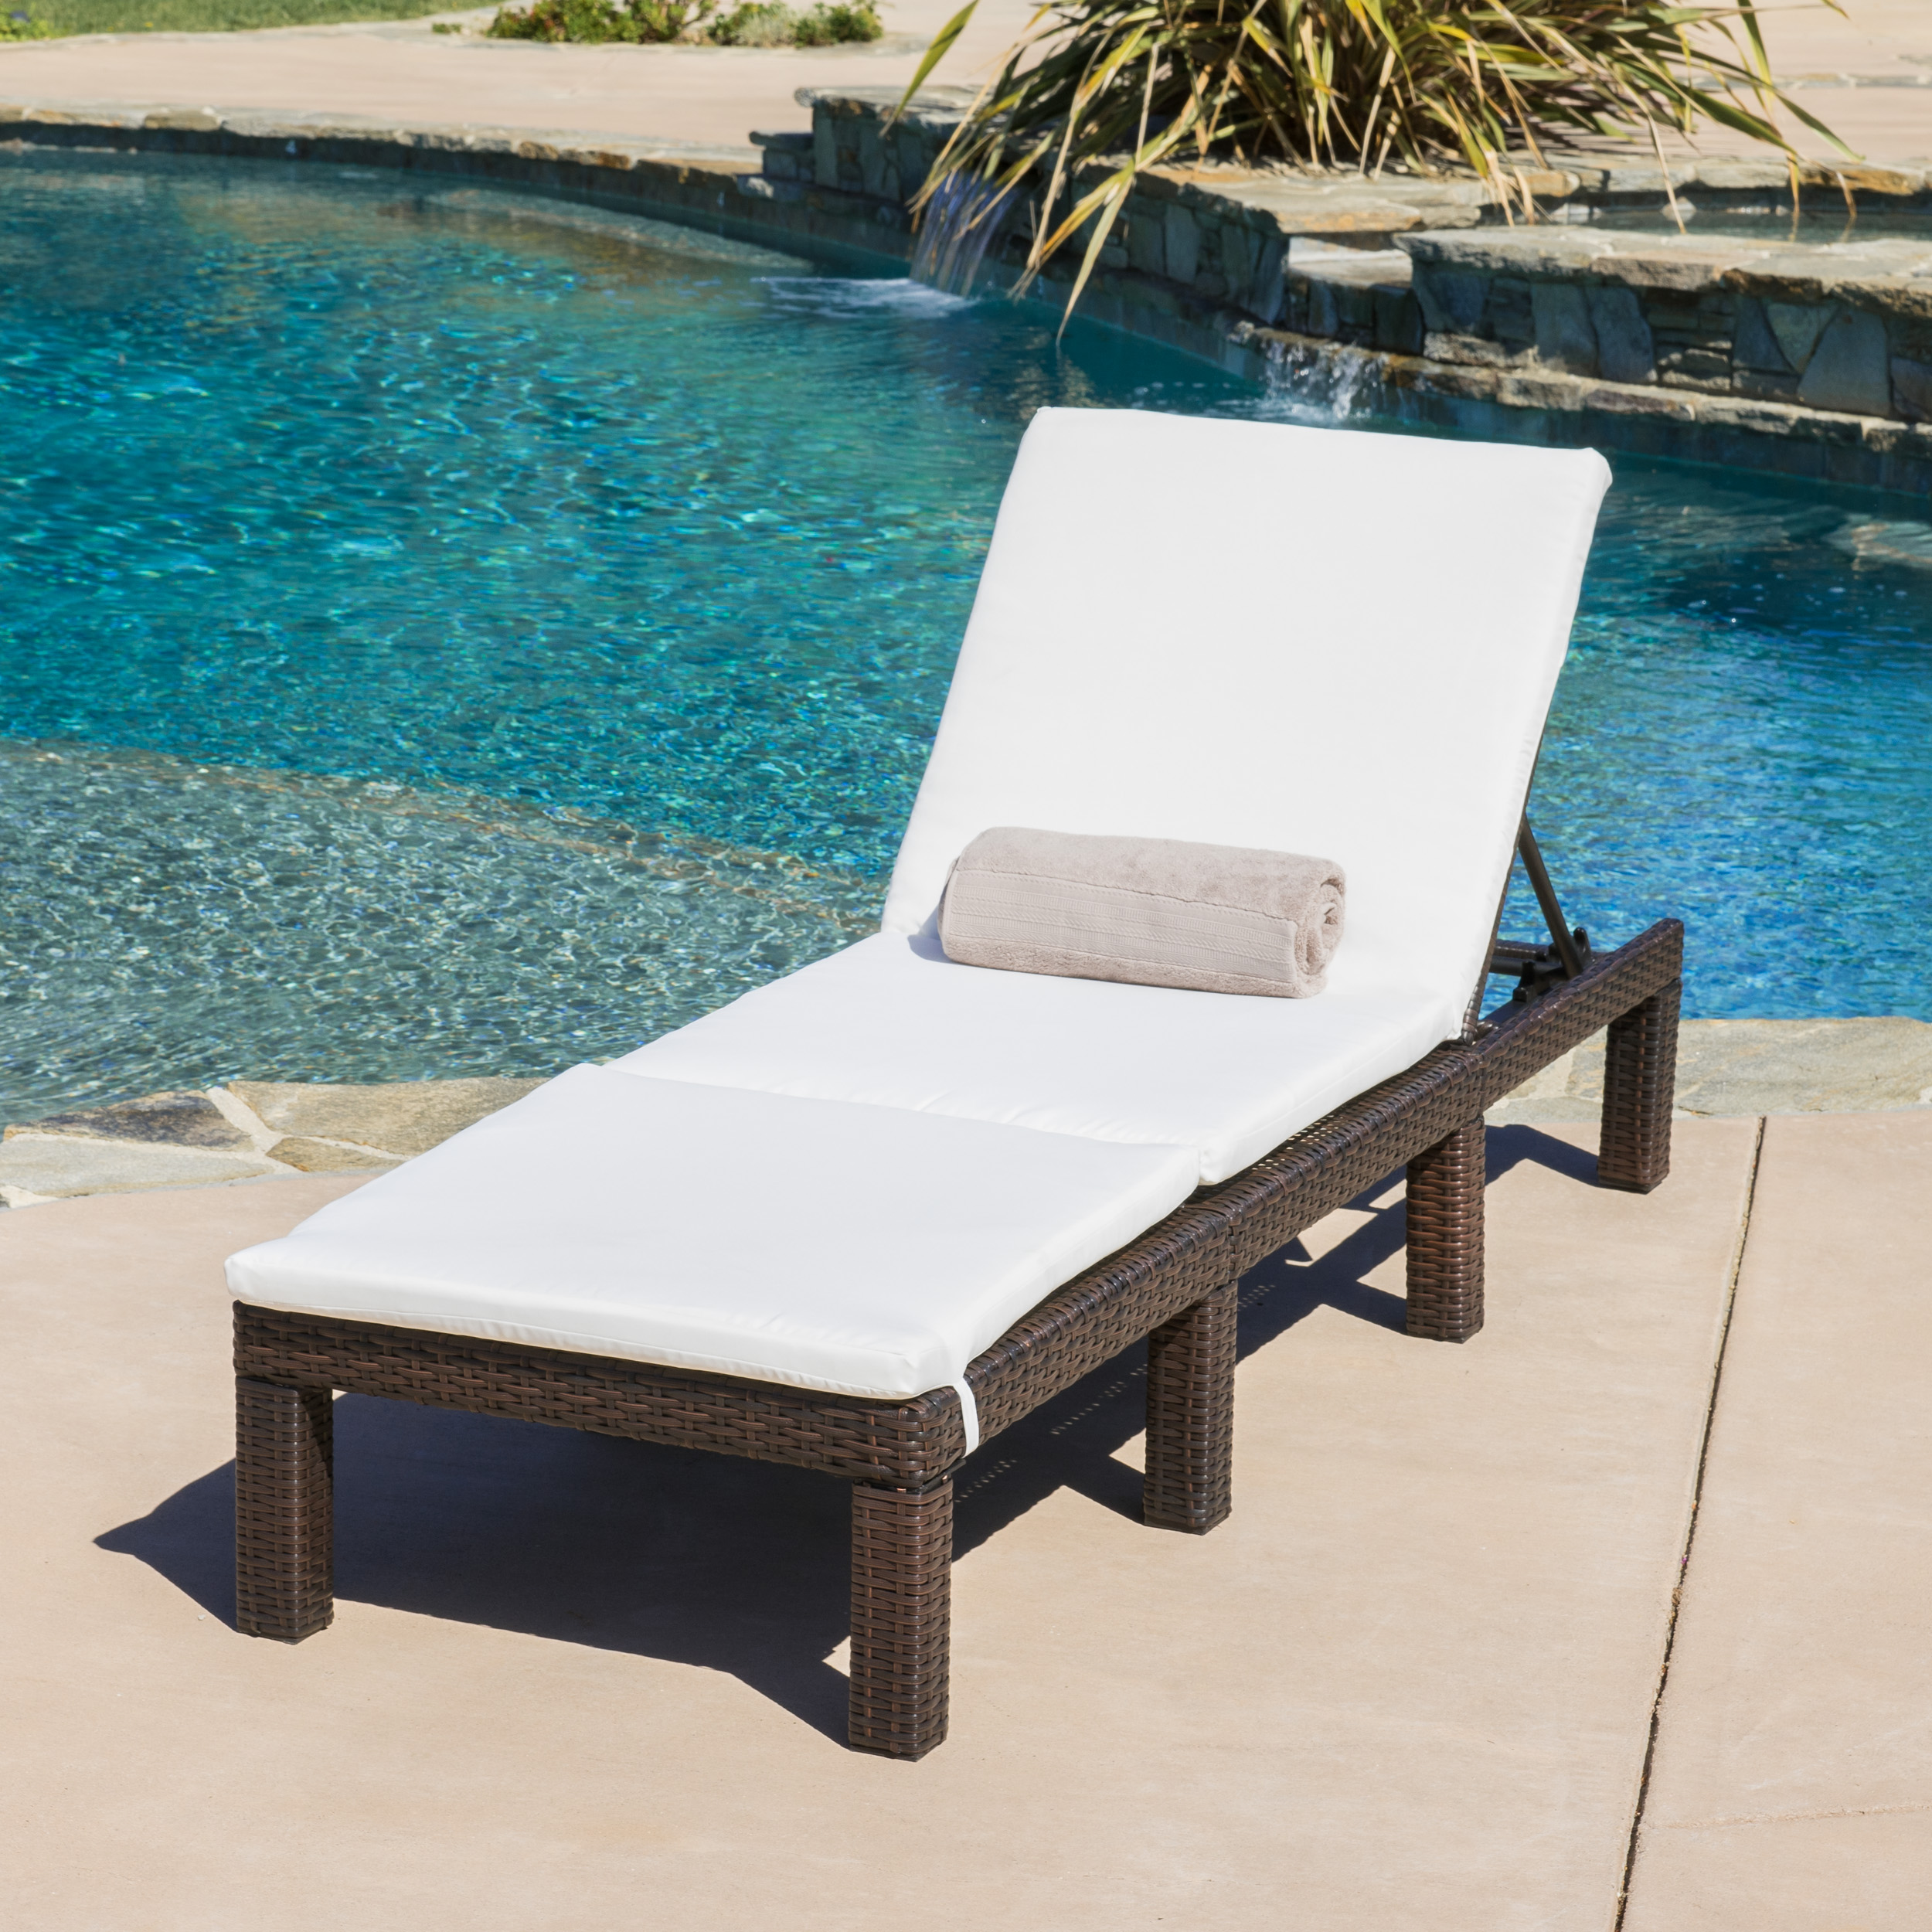 Aspen Outdoor Wicker Adjustable Chaise Lounge Chair with Cushion, Multibrown